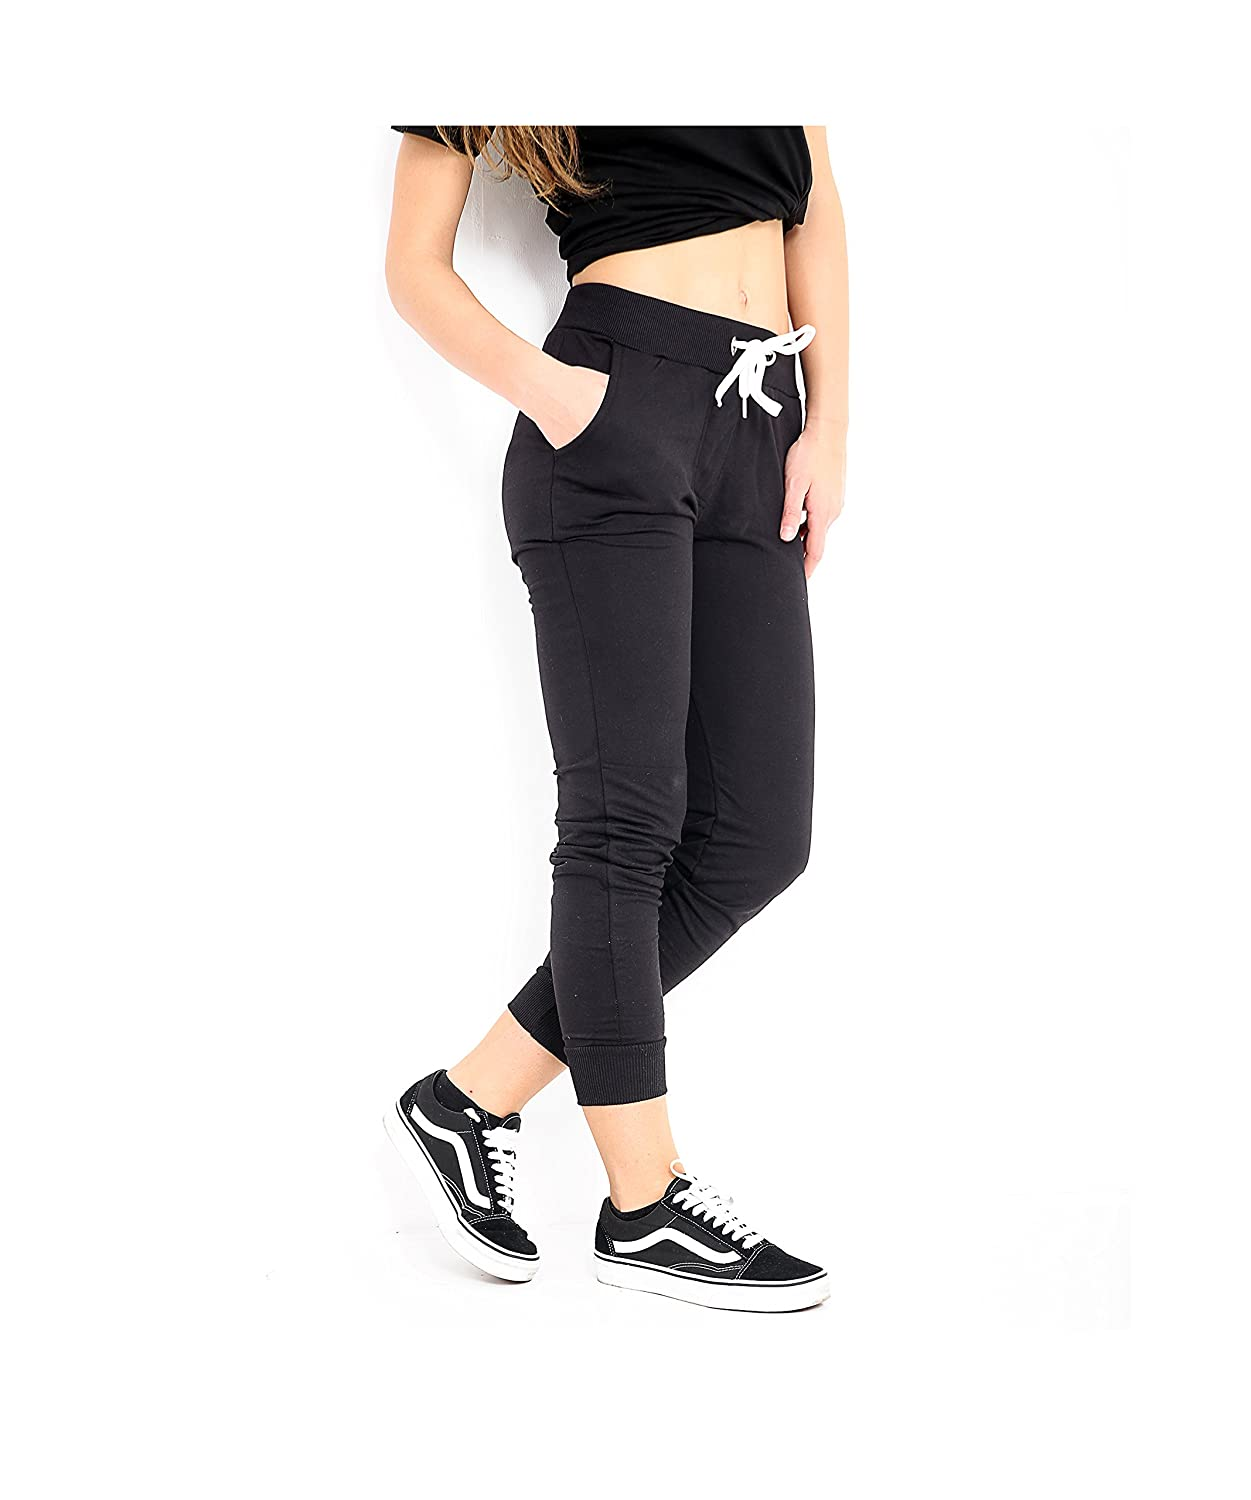 attractive & durable complimentary shipping reliable quality FASHION INSTYLE LTD1 Womens Joggers Trousers Ladies Tracksuit Bottoms  Jogging Gym Pants Lounge Wear